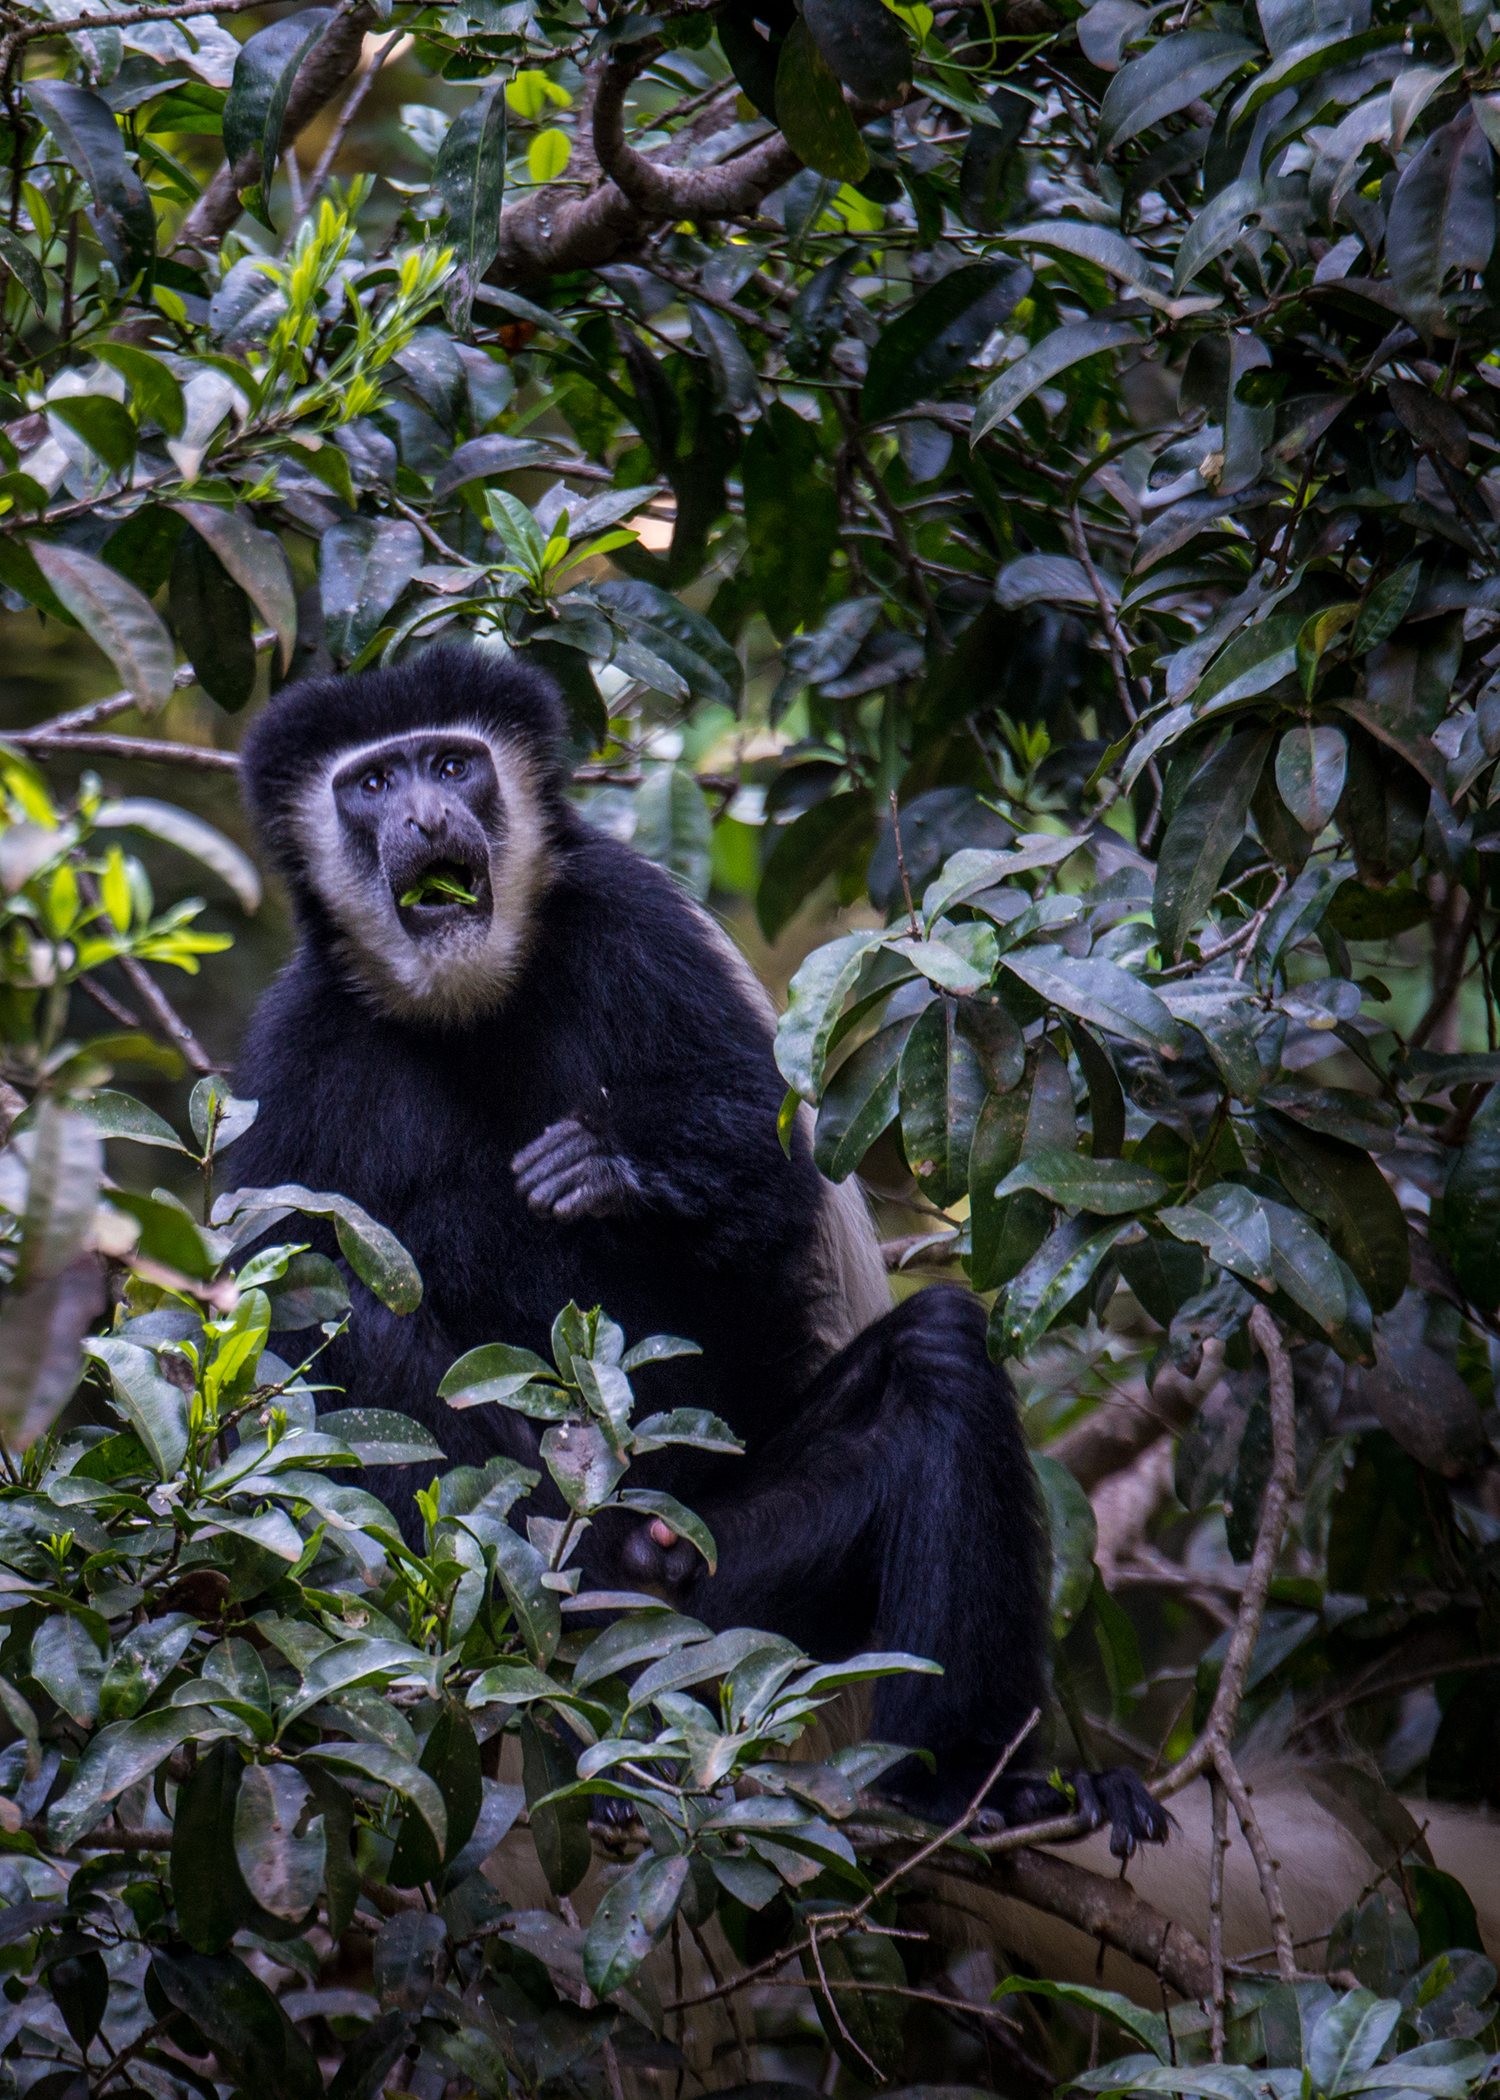 The Colobus Monkey is less common for visitors to spot, so we were very fortunate to have some cooperative monkey business to watch. The Colobus Monkey is known for being a great jumper and we witnessed our fair share of that being demonstrated.